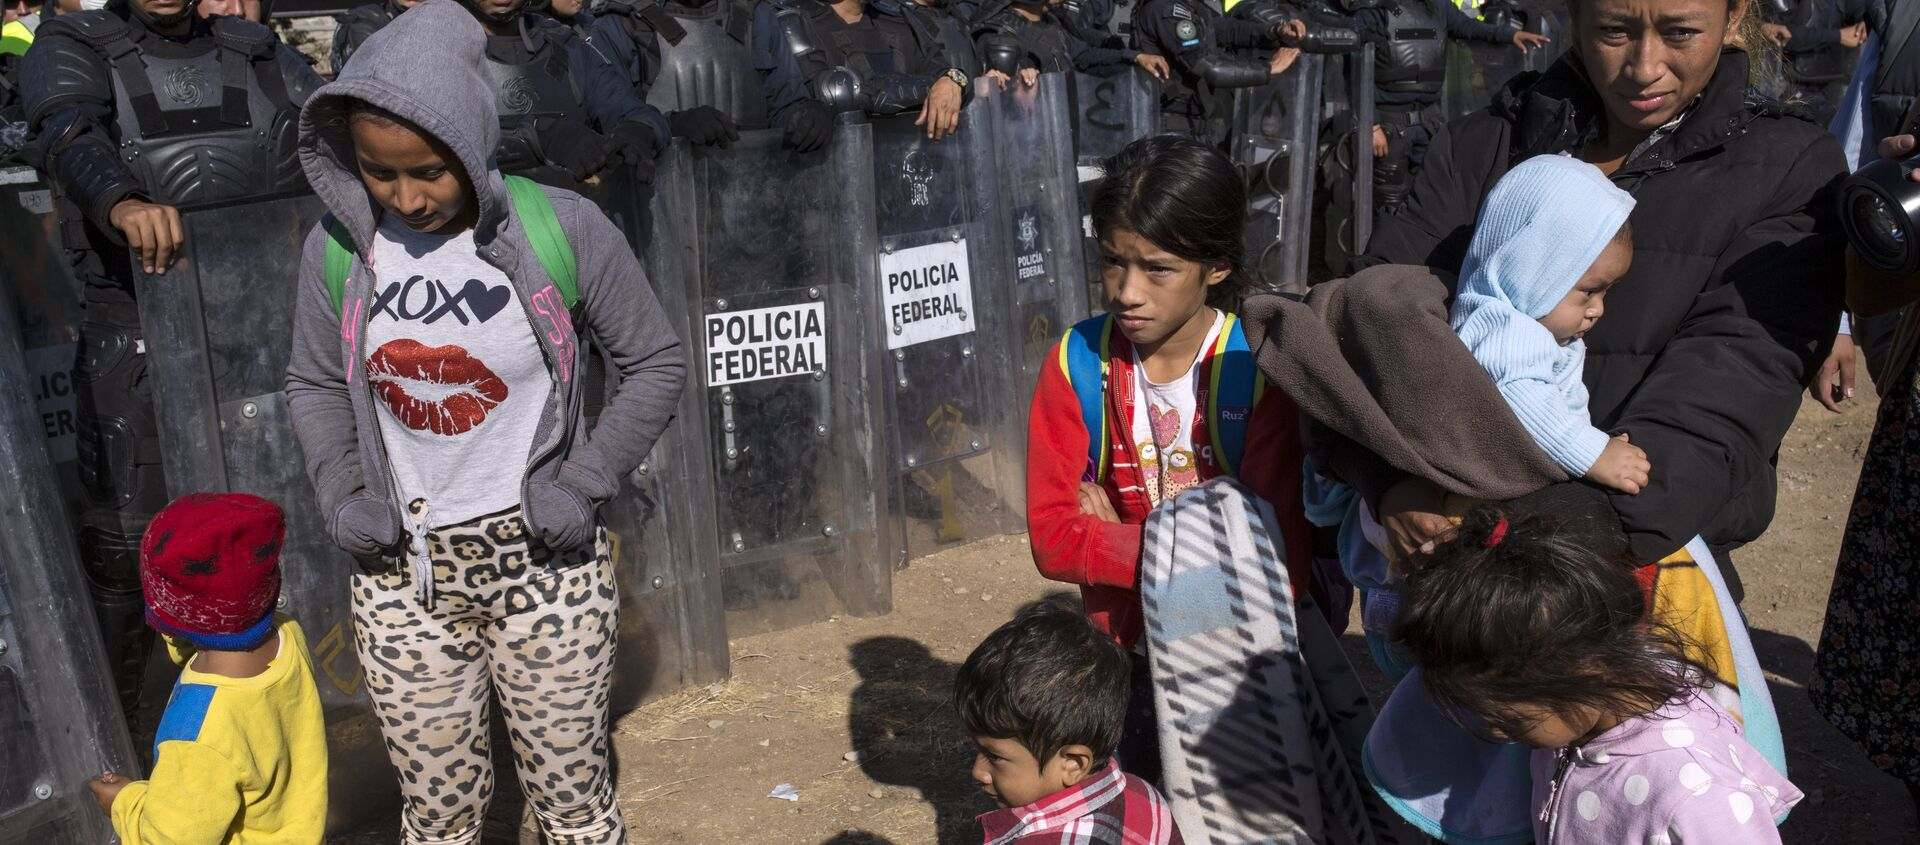 Migrants stand near Mexican police at the Mexico-U.S. border in Tijuana, Mexico, Sunday, Nov. 25, 2018, as they try to reach the US. - Sputnik International, 1920, 11.08.2021